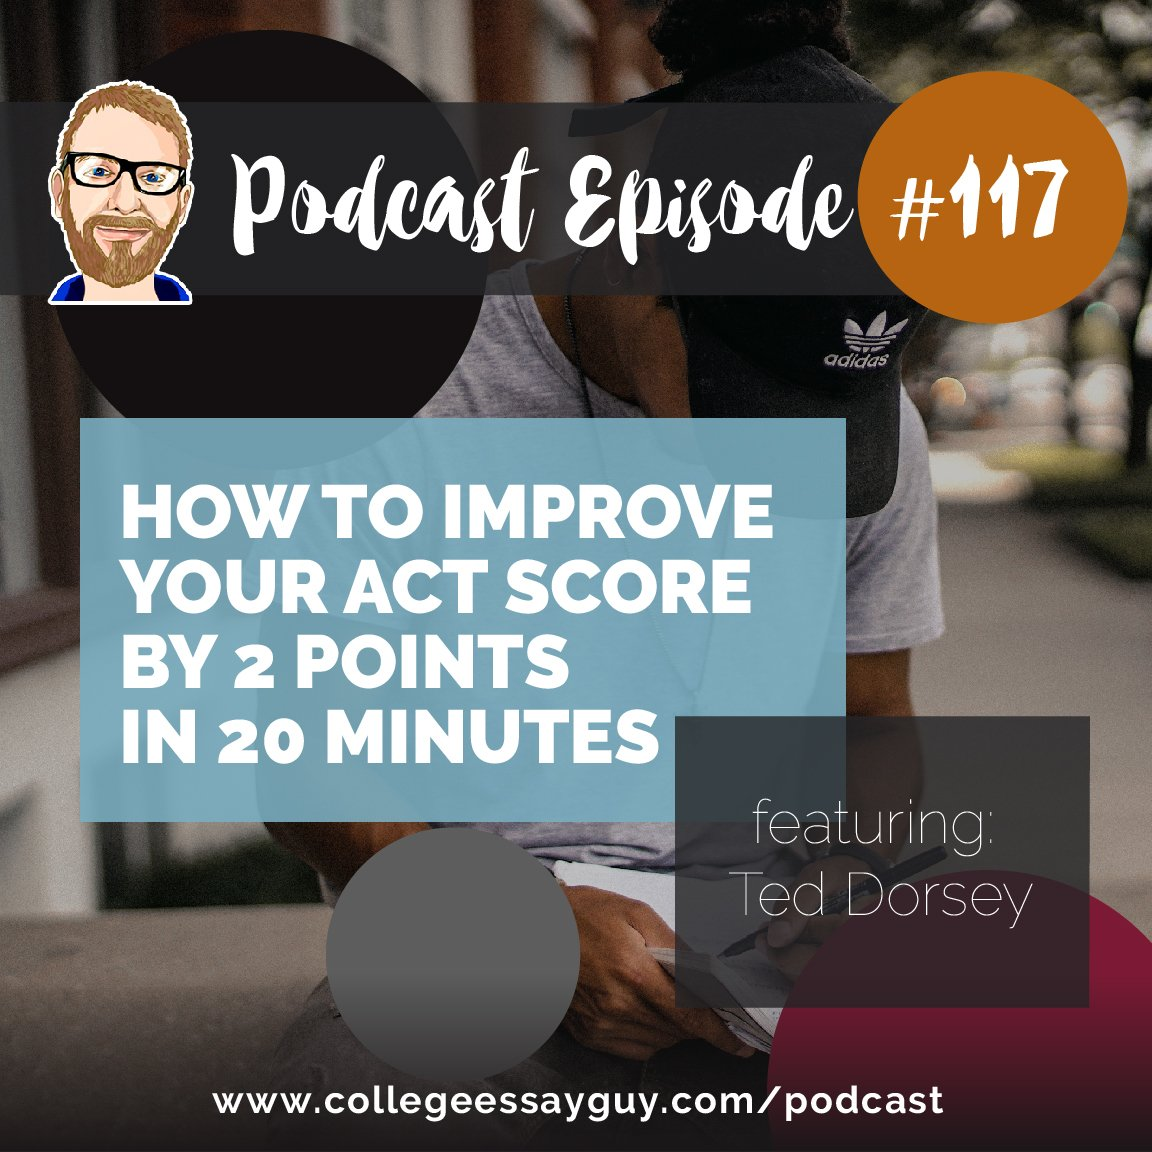 I've handed the reins over to my guest Ted Dorsey (@tutorted), who has aced the SAT, ACT, and PSAT, and let him do the podcast. He offers clear steps to improving your ACT score—in less time than it takes to bake a potato.  🎧 Listen: goo.gl/BN6n8U